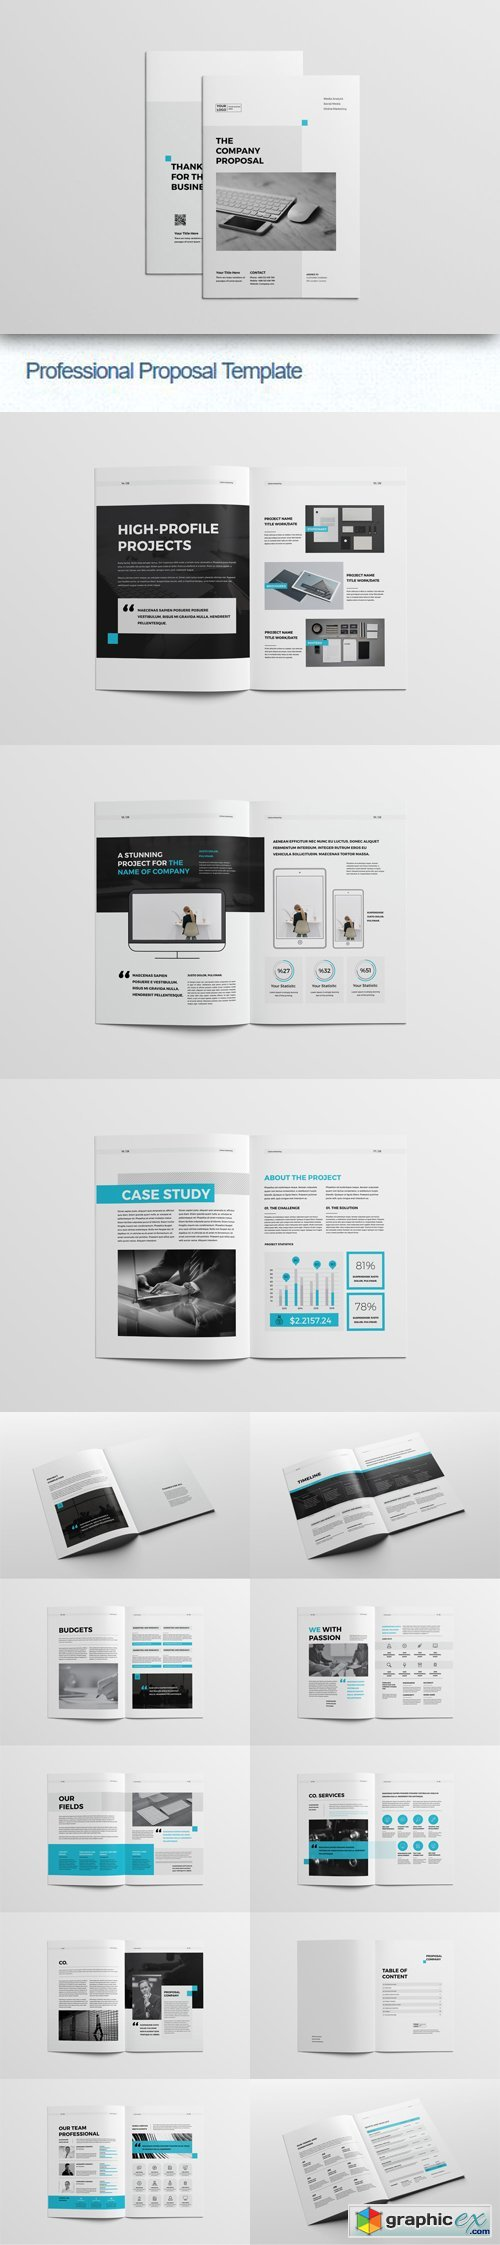 Professional Proposal Indesign [INDD/IDML] Template » Free Download ...